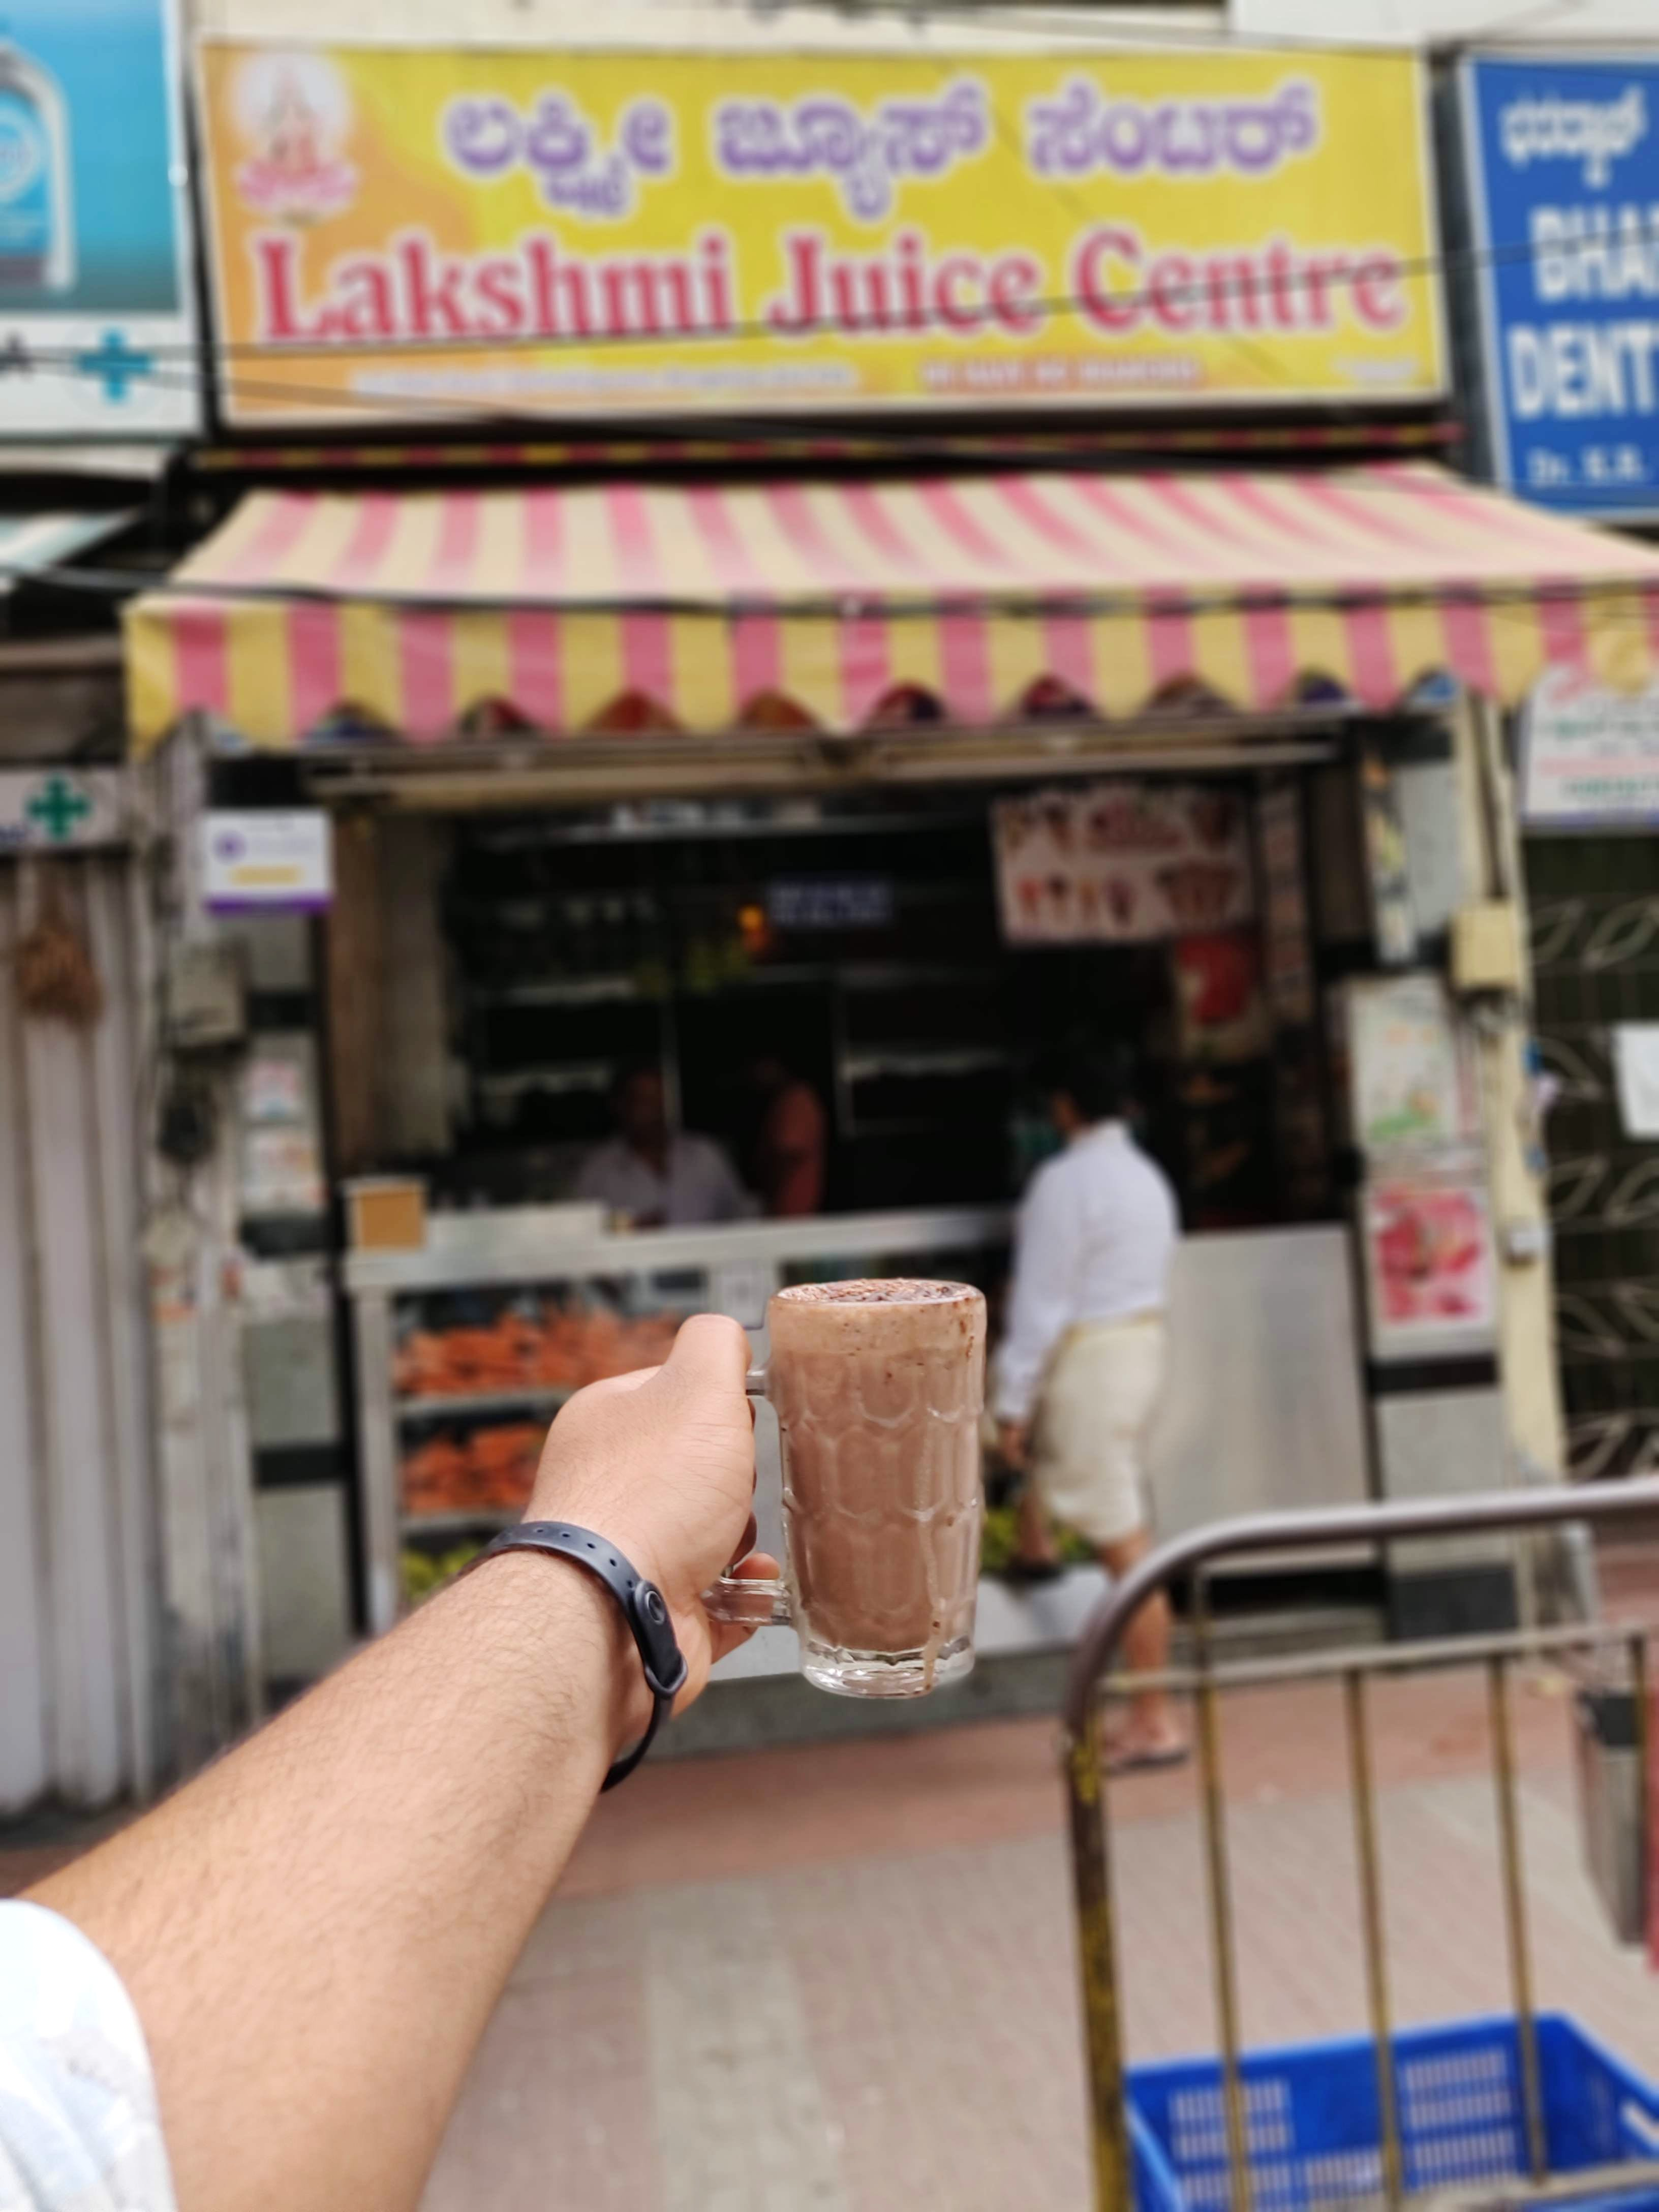 Lakshmi Juice Center - One Stop For All Kind Of Juices And Milkshakes